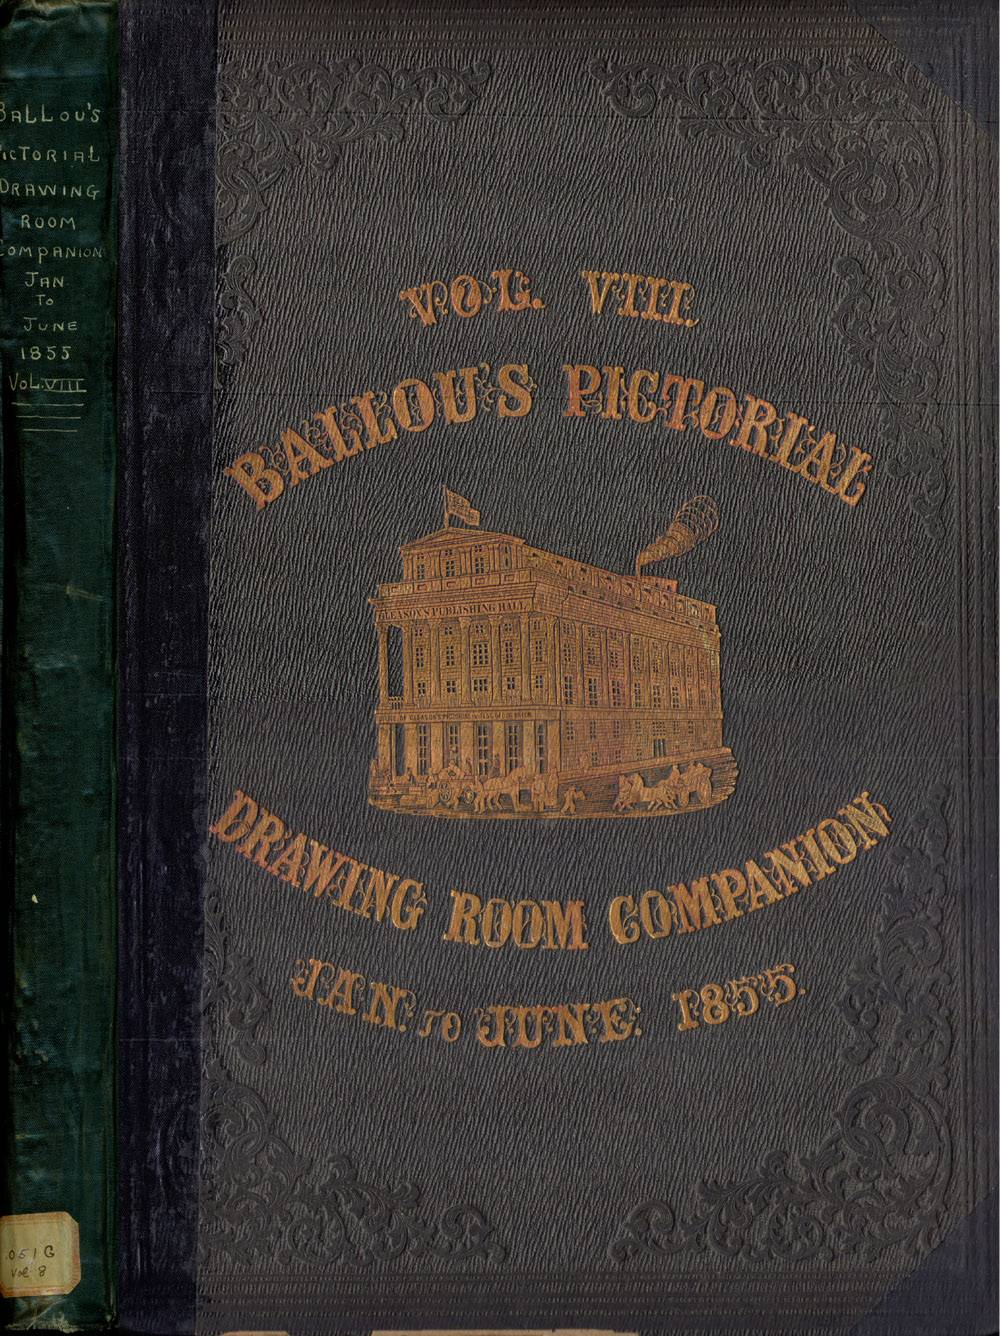 Images Ballou Pictorial Drawing Room Volume Viii Wallpaper